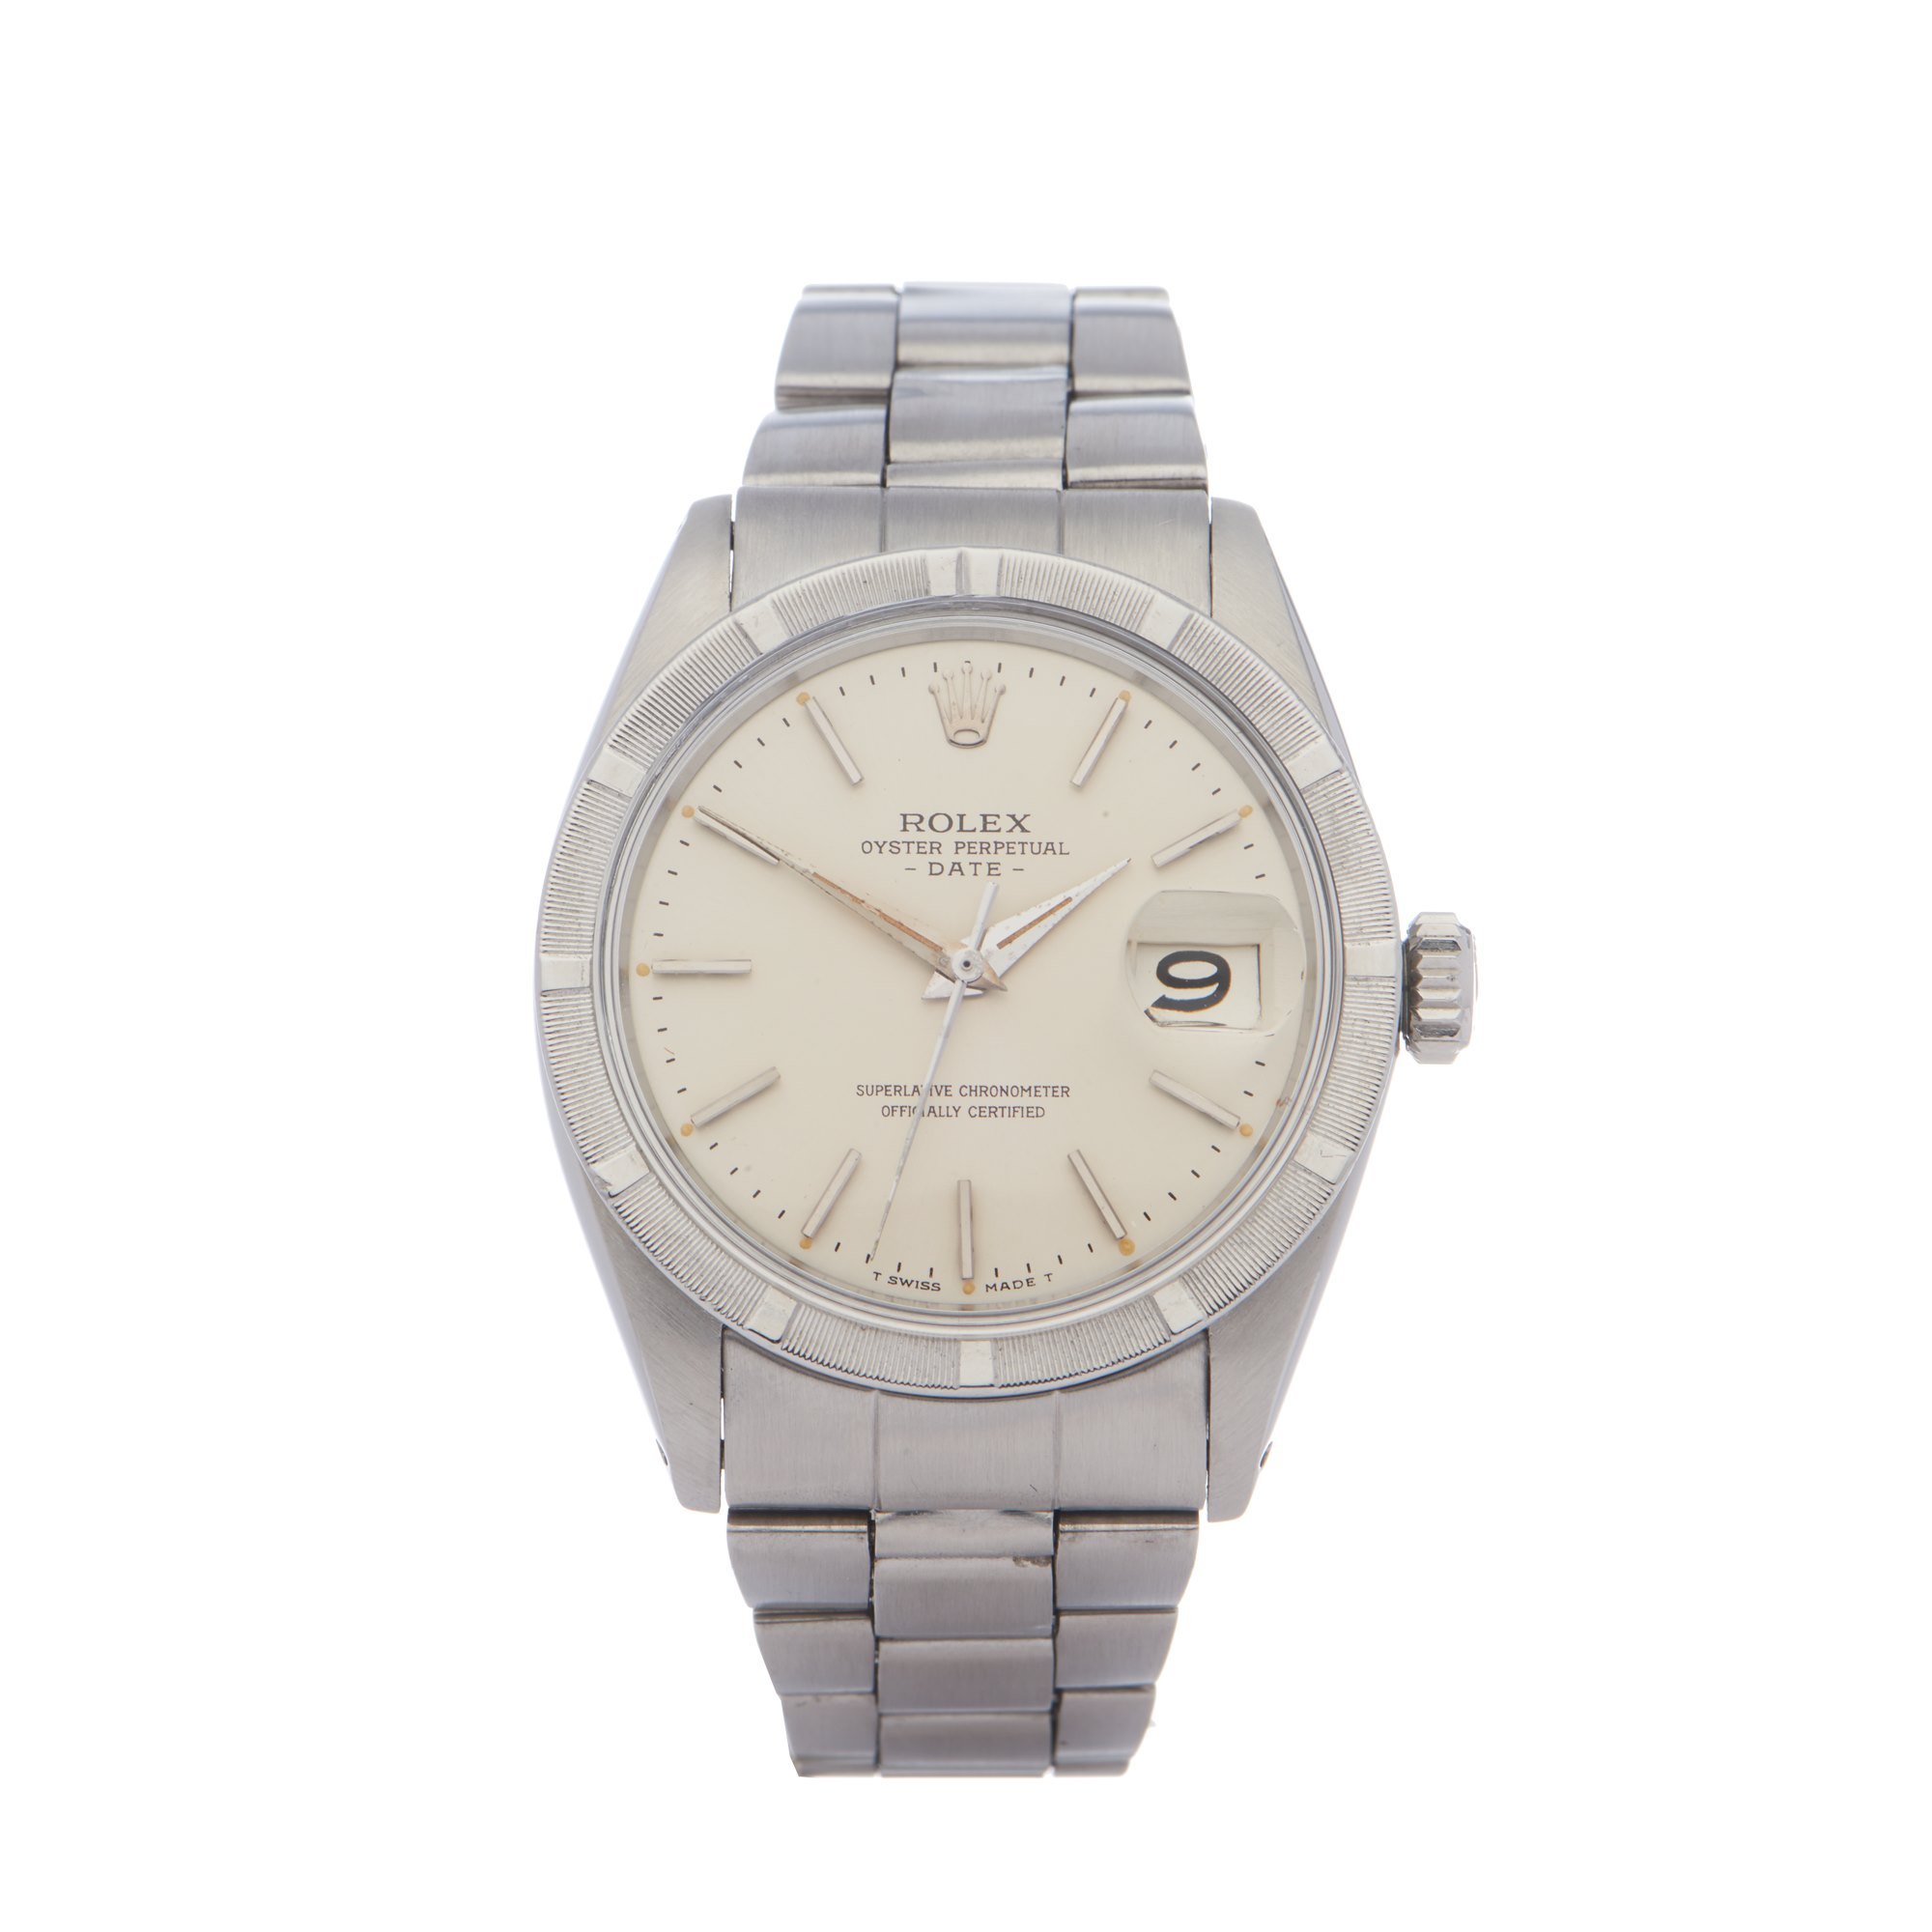 Rolex Oyster Perpetual Date Stainless Steel 1501